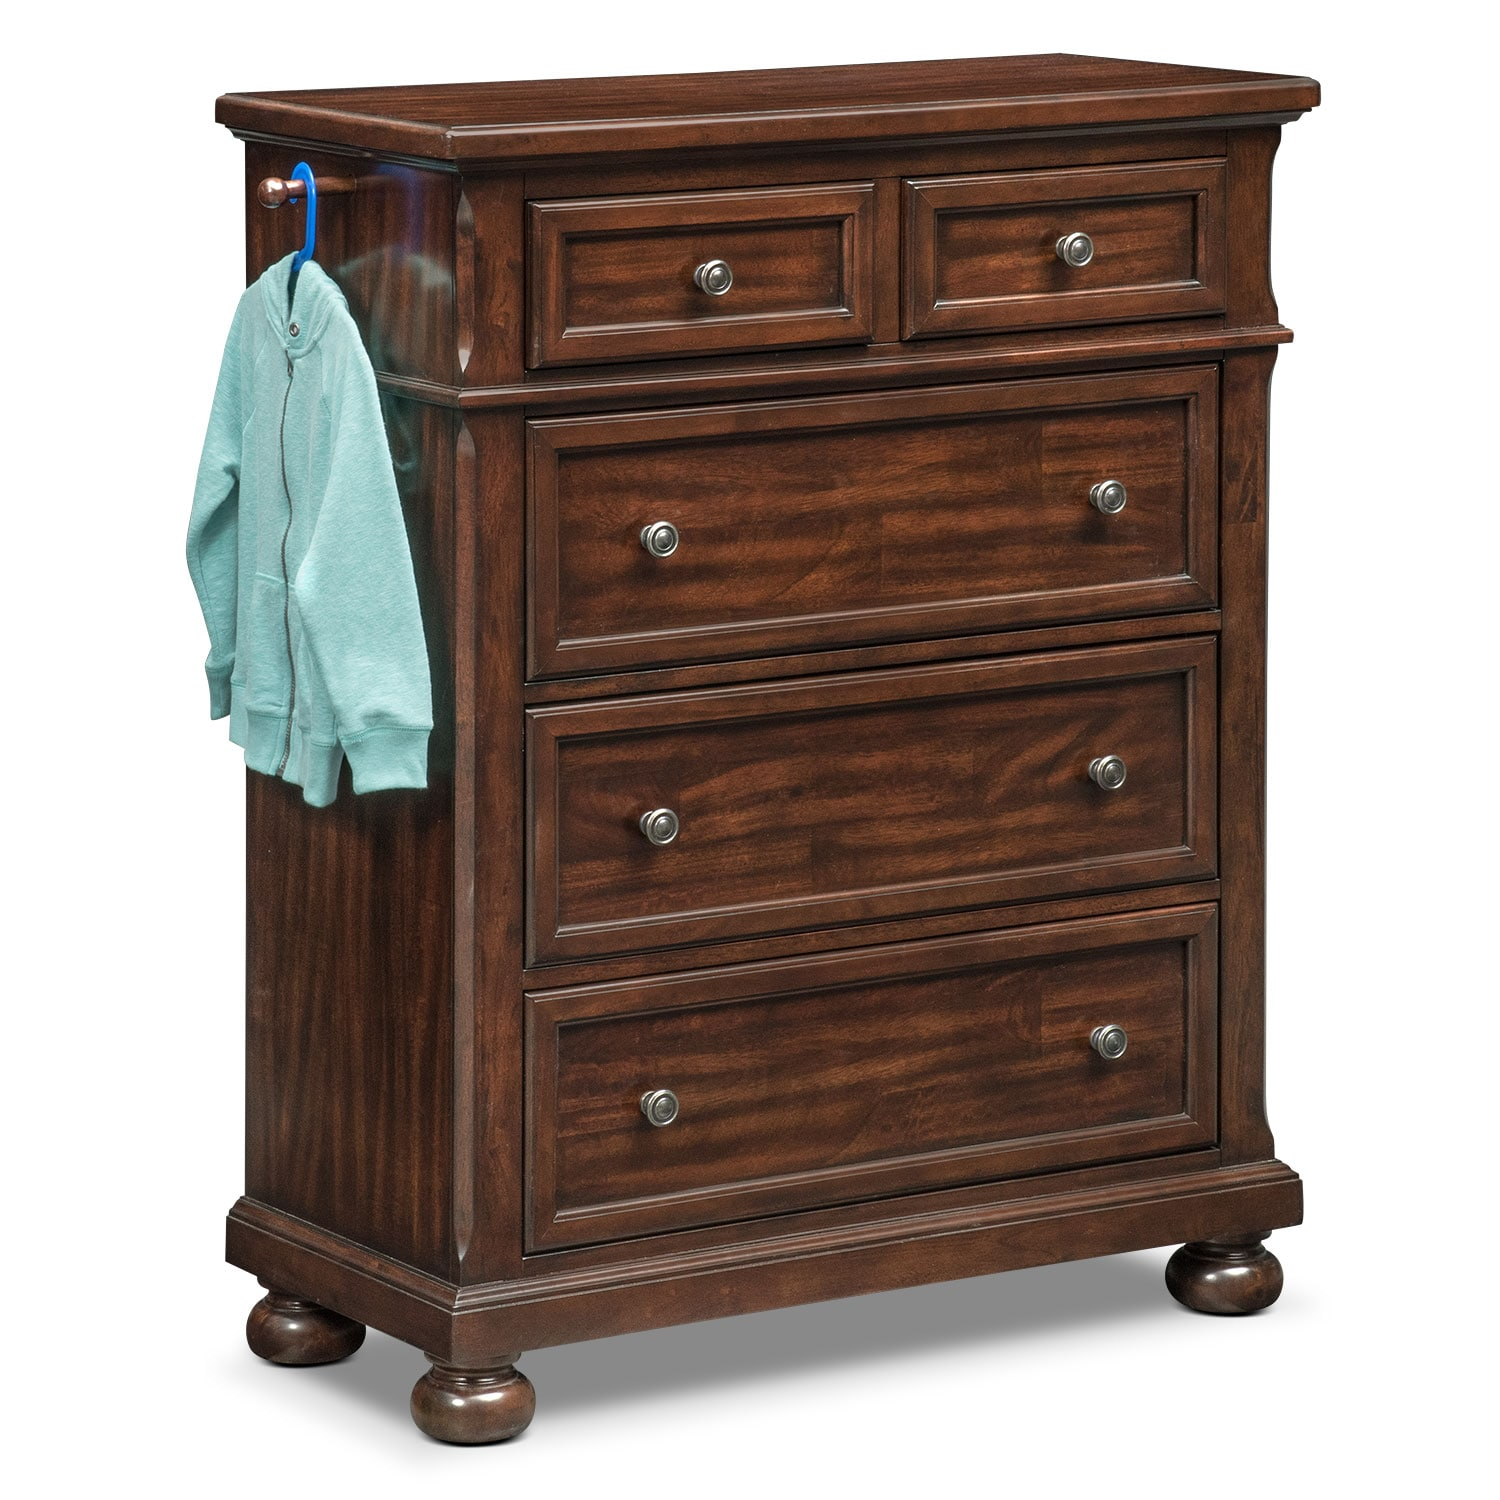 Bedroom Furniture - Hanover Youth Chest